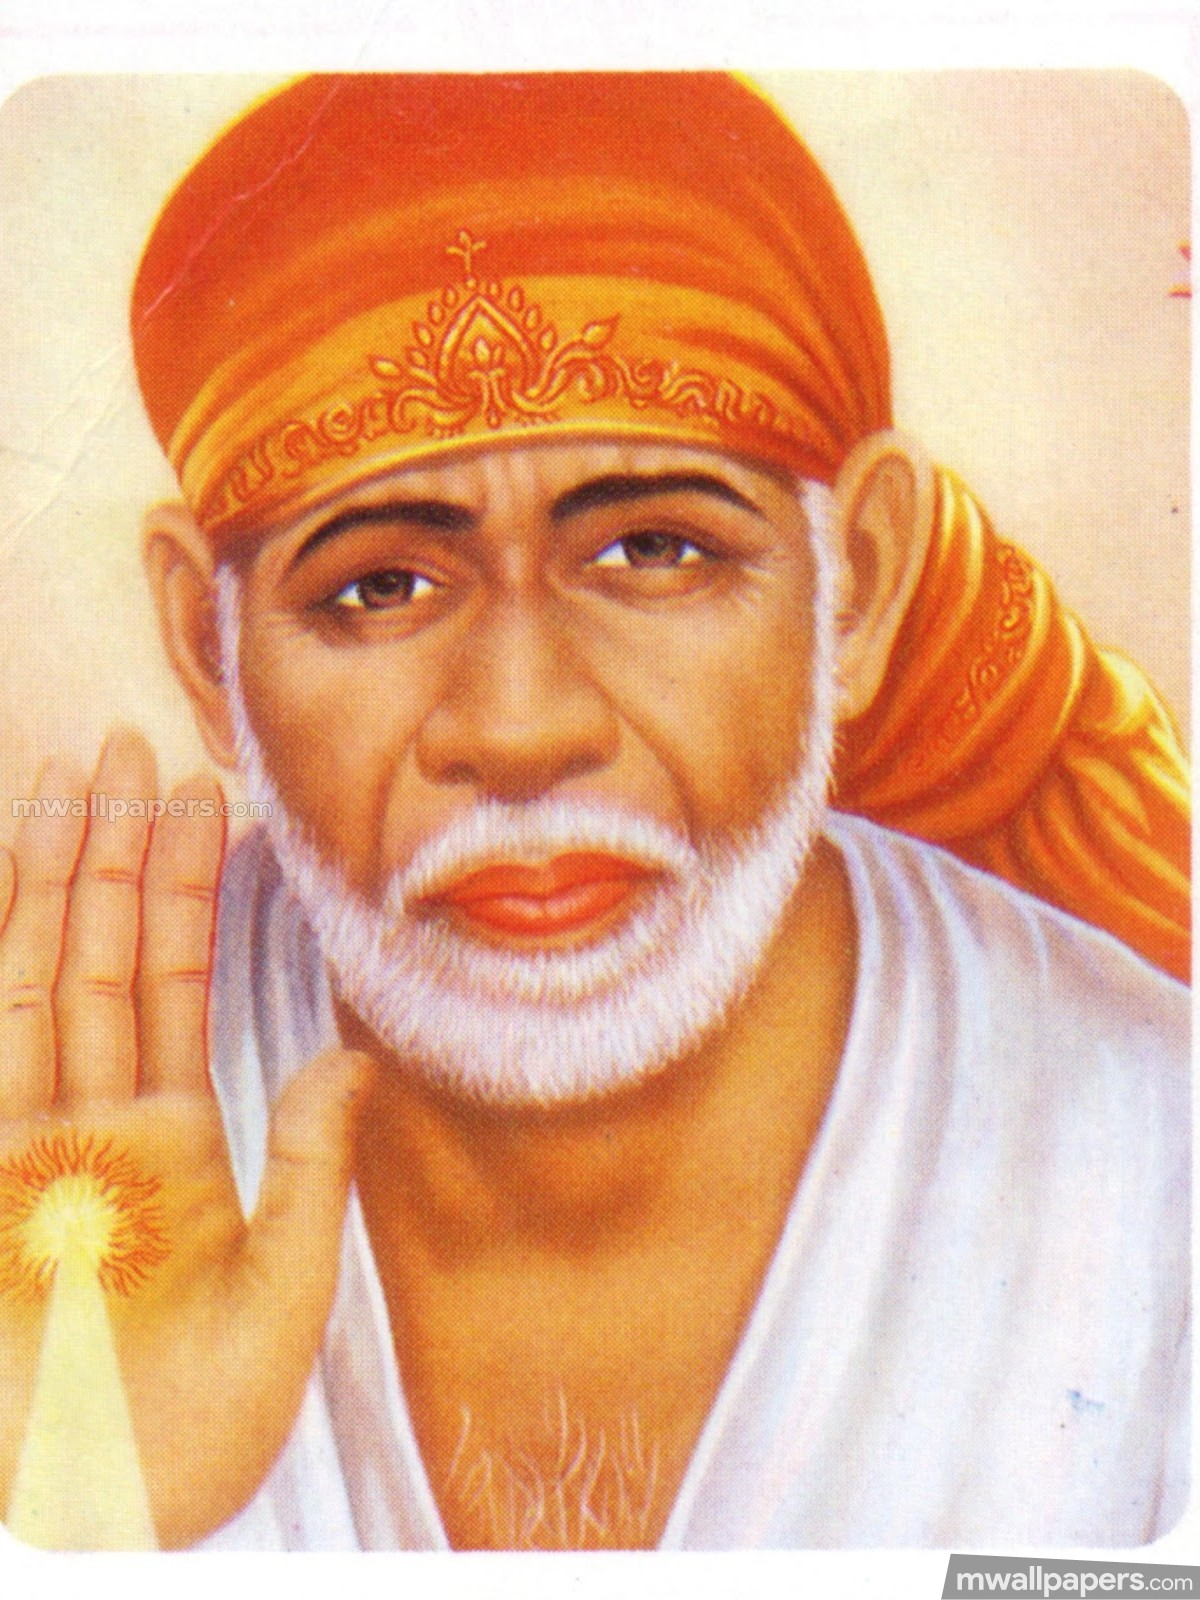 Shirdi Sai Baba HD Photos & Wallpapers (1080p) (16260) - shirdi sai baba, sai baba, baba, sai, god, hindu god